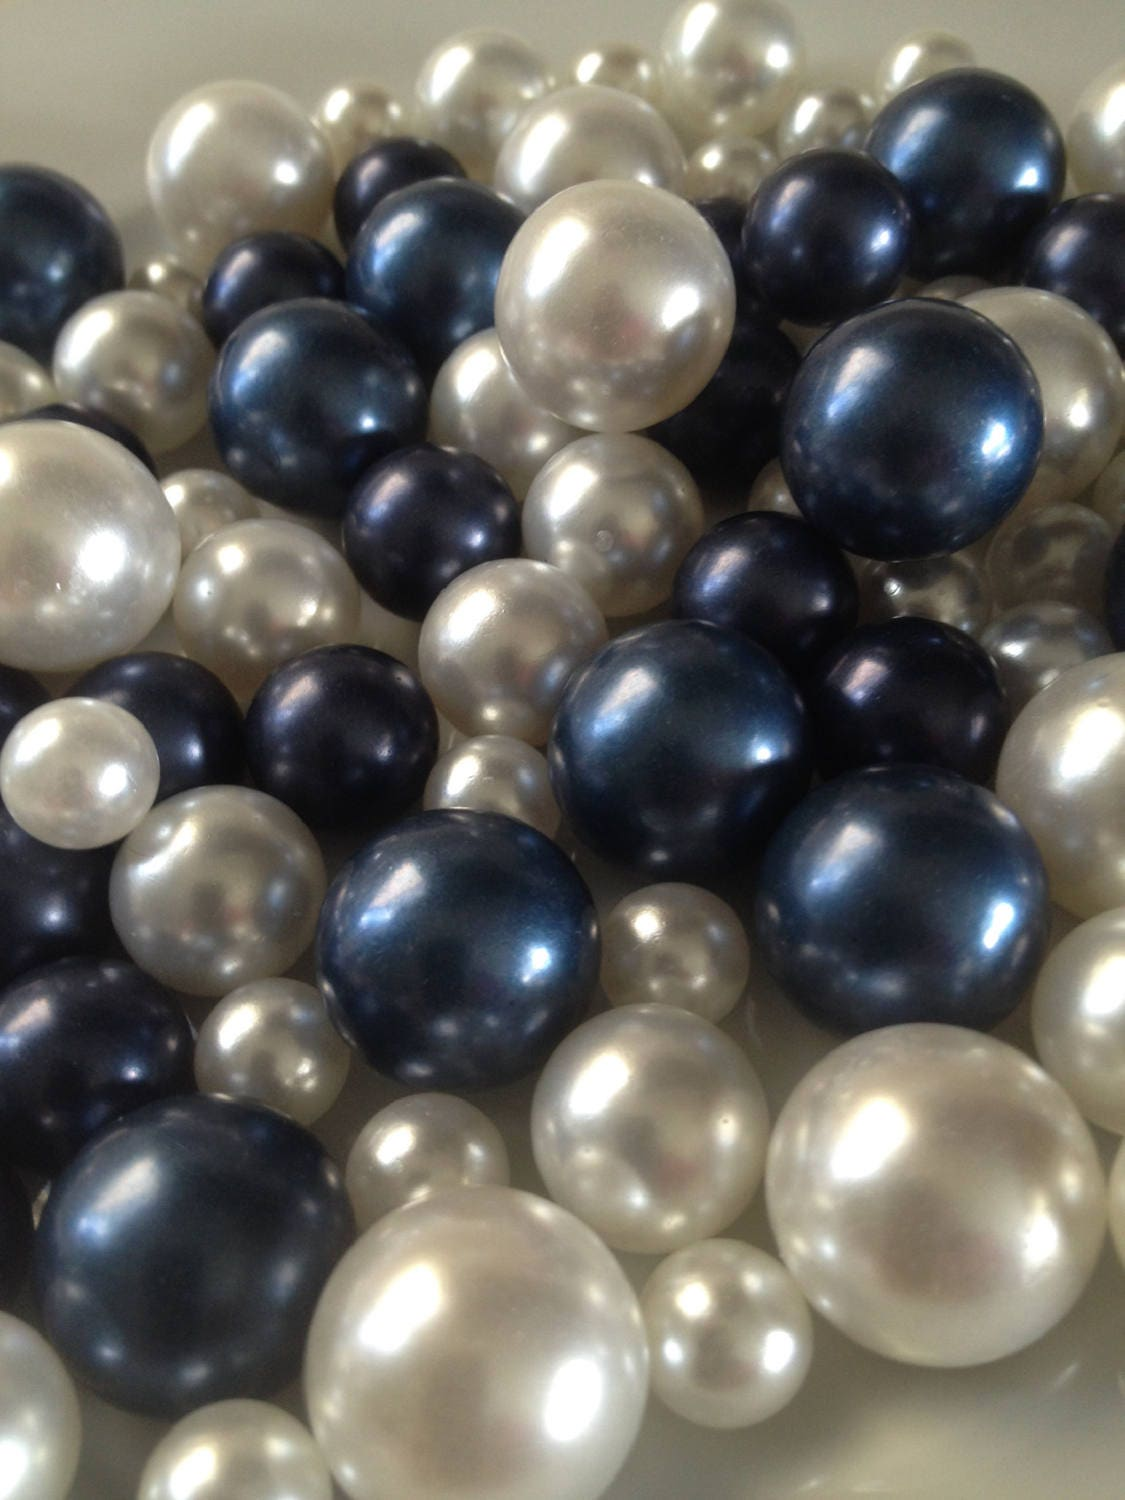 90pc Navy Blue White Pearls No Hole Pearls Vase Fillers